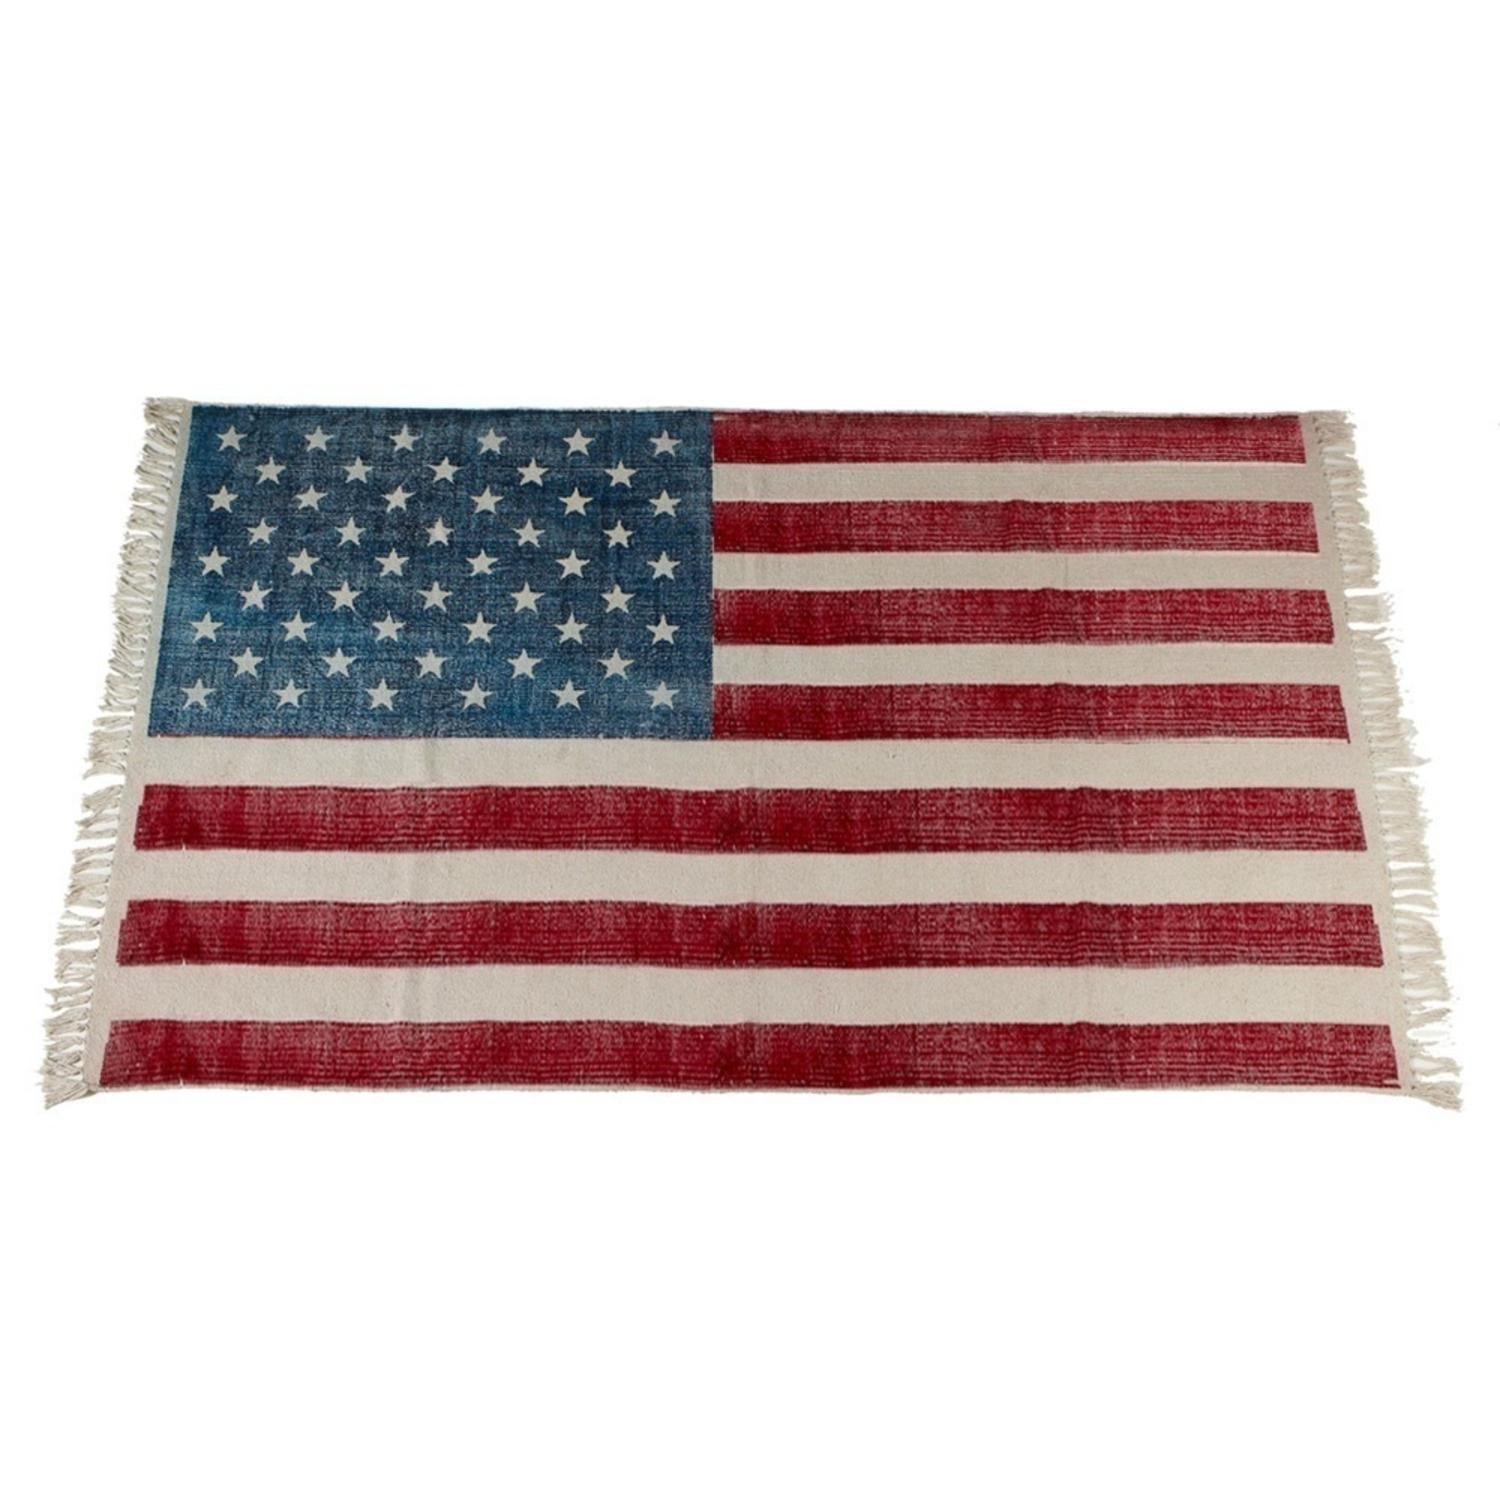 3' x 5' Red, White and Blue American Flag Printed Wall Hanging Rectangular Rug with Fringes